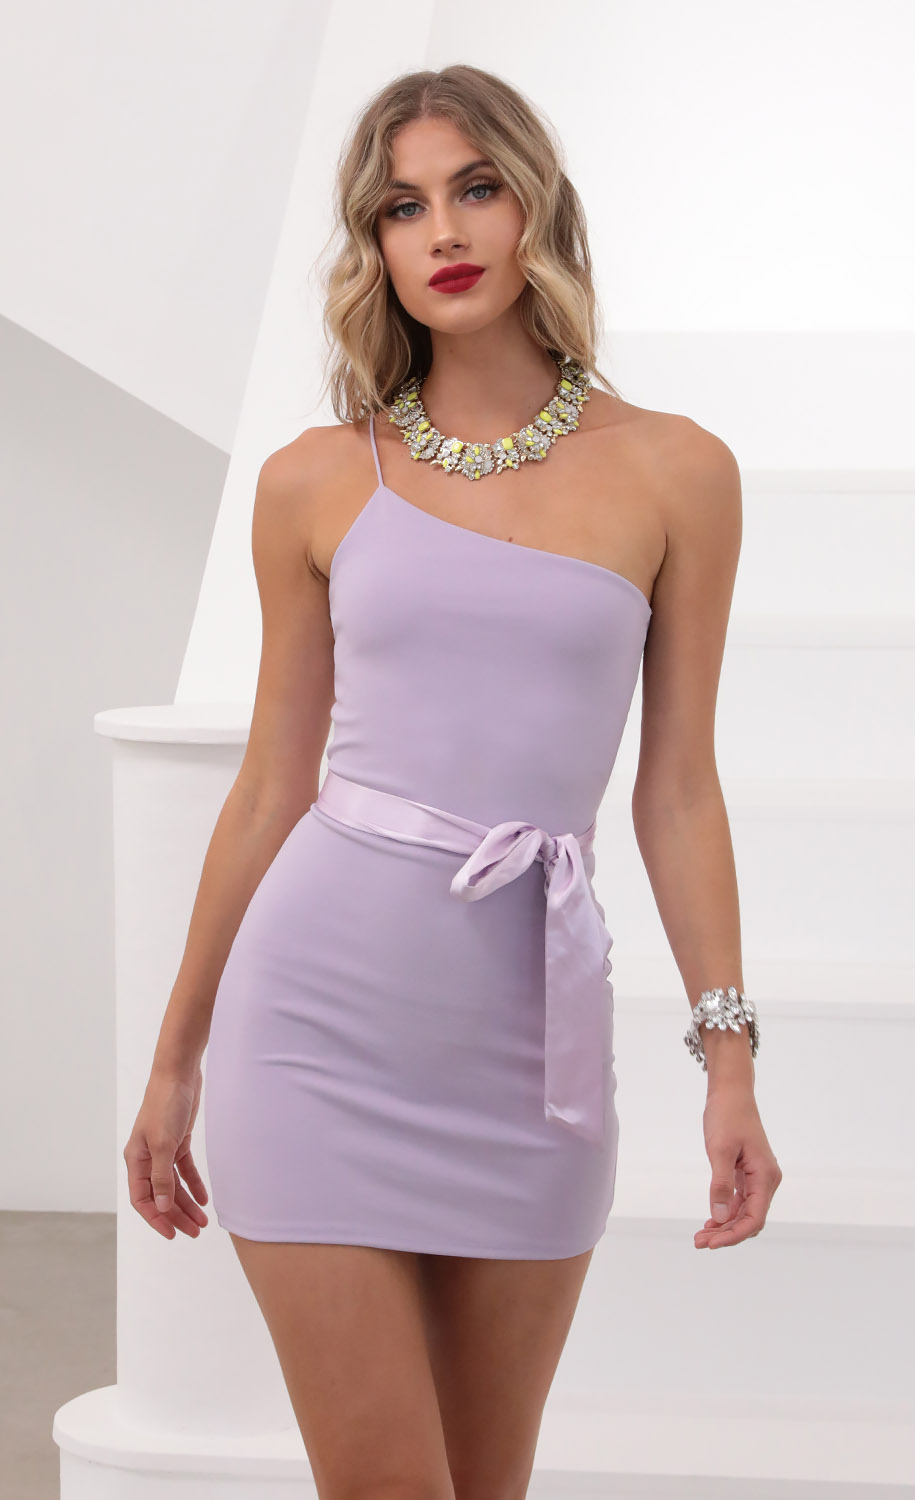 Giselle One Shoulder Bodycon Dress in Lilac